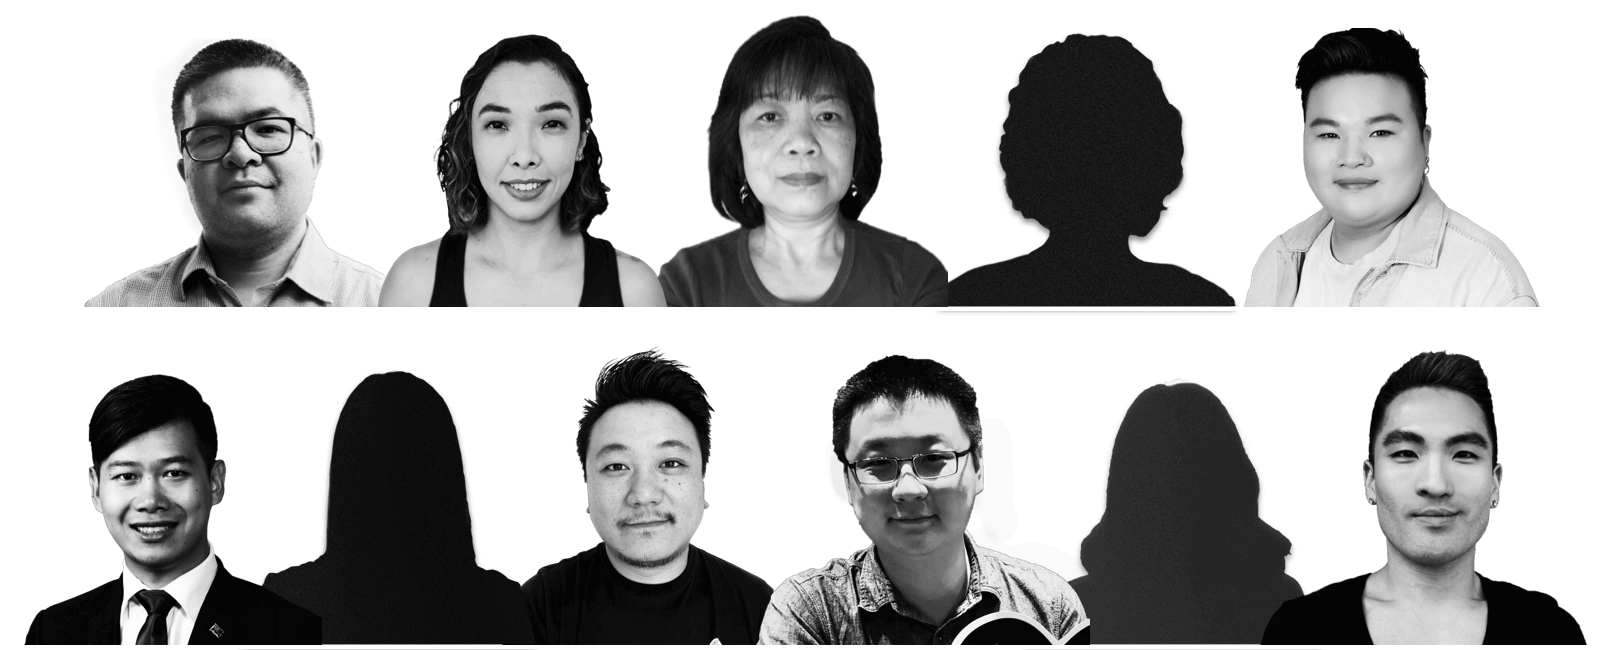 Since the start of the Covid-19 pandemic, Asians around the world appear to be experiencing more discrimination, and many say it's happening at work.